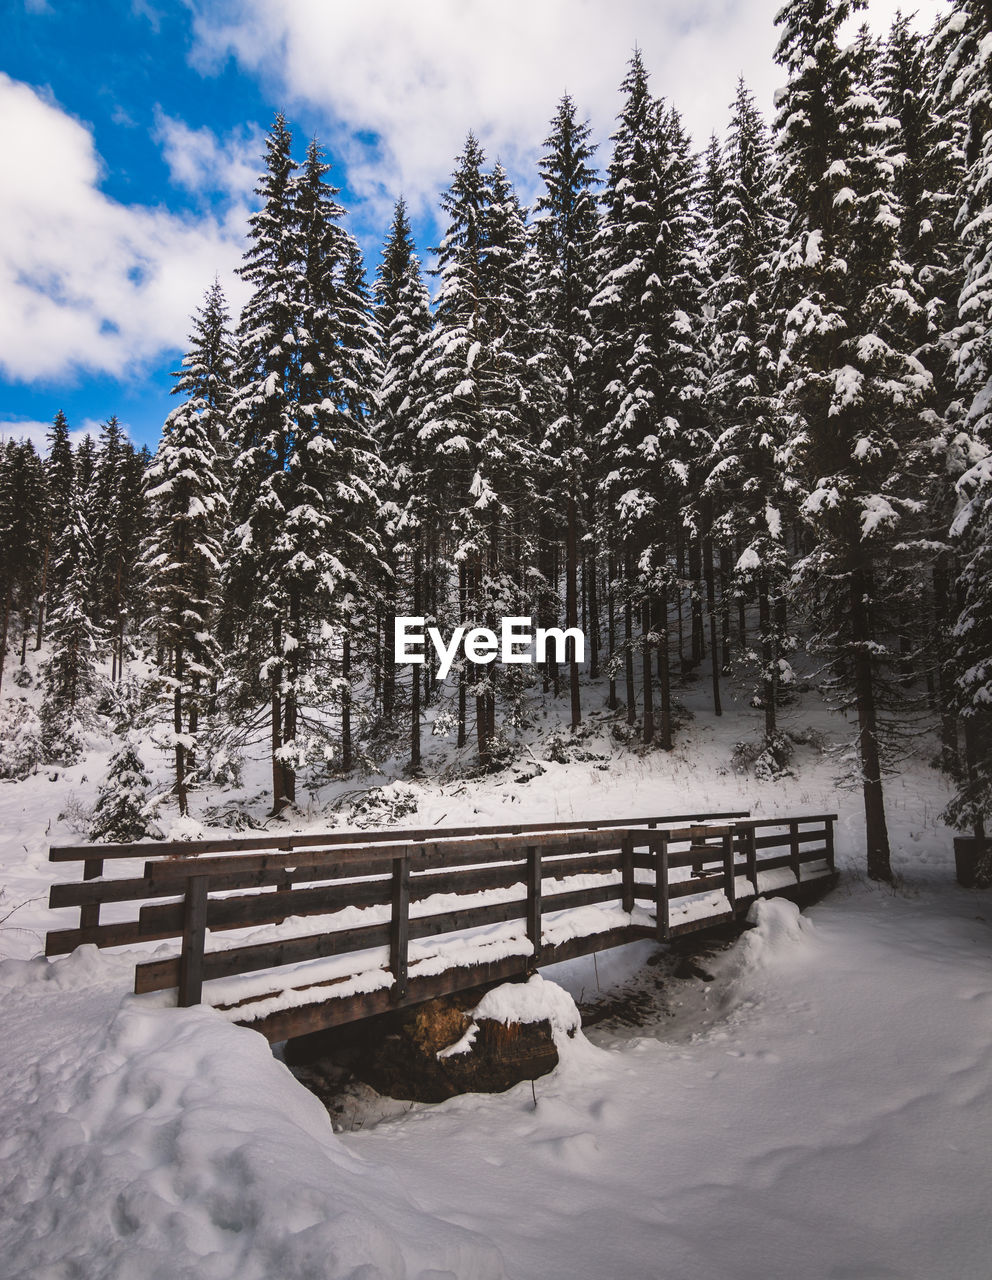 snow, winter, cold temperature, weather, nature, tranquility, cold, tranquil scene, beauty in nature, tree, frozen, scenics, white color, outdoors, landscape, day, no people, cloud - sky, sky